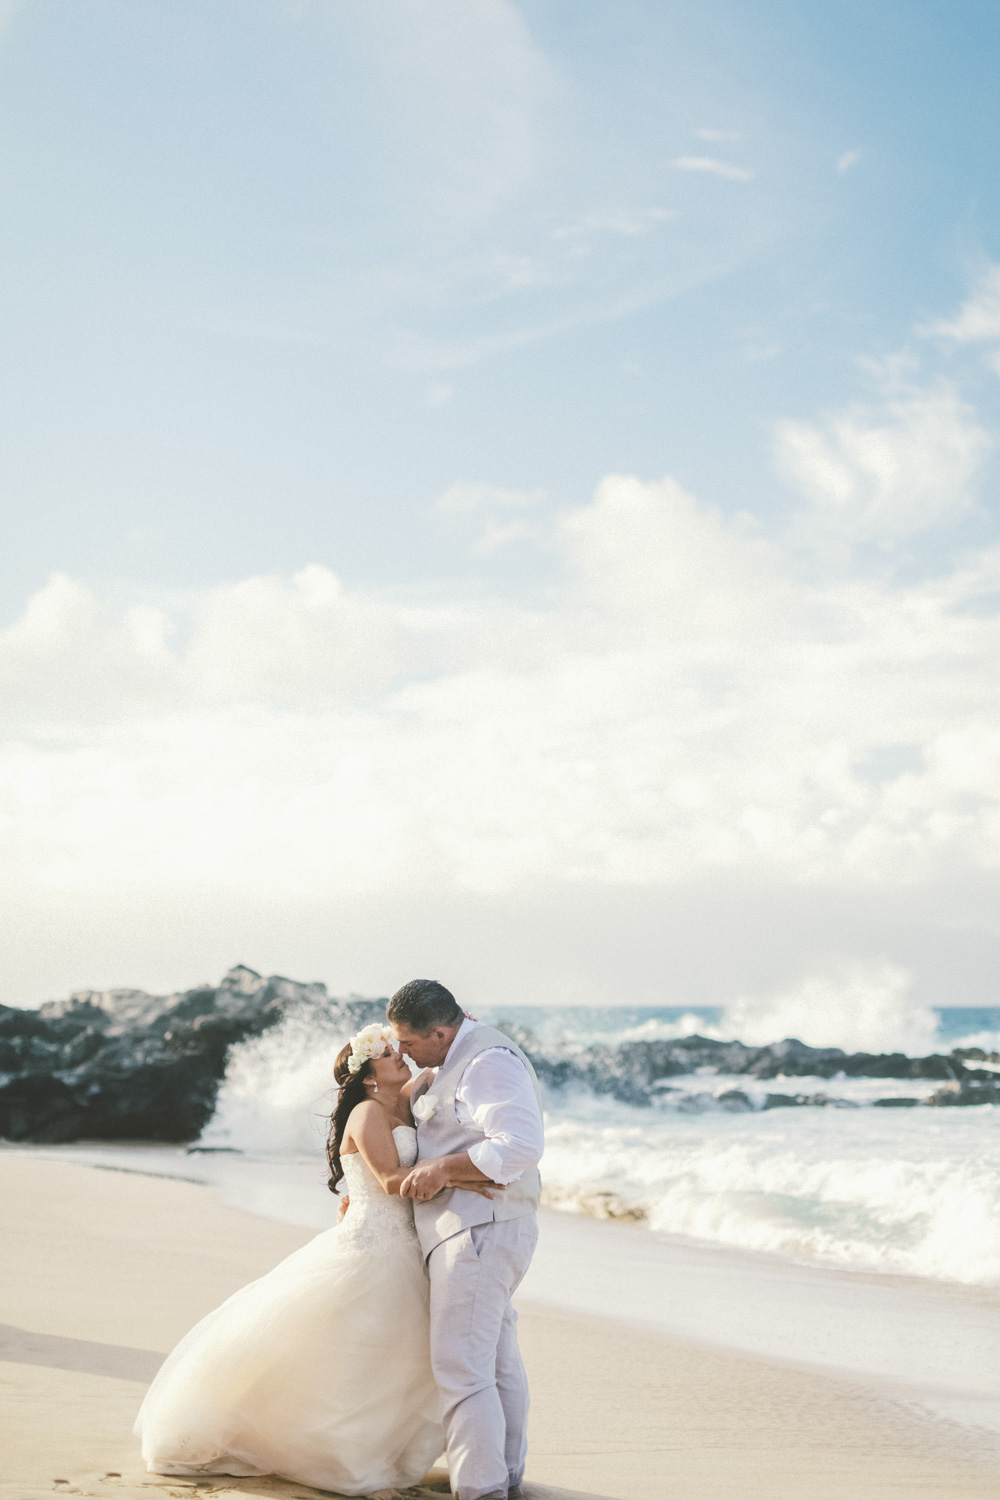 Maui hawaii photographer wedding inspiration_17.jpg